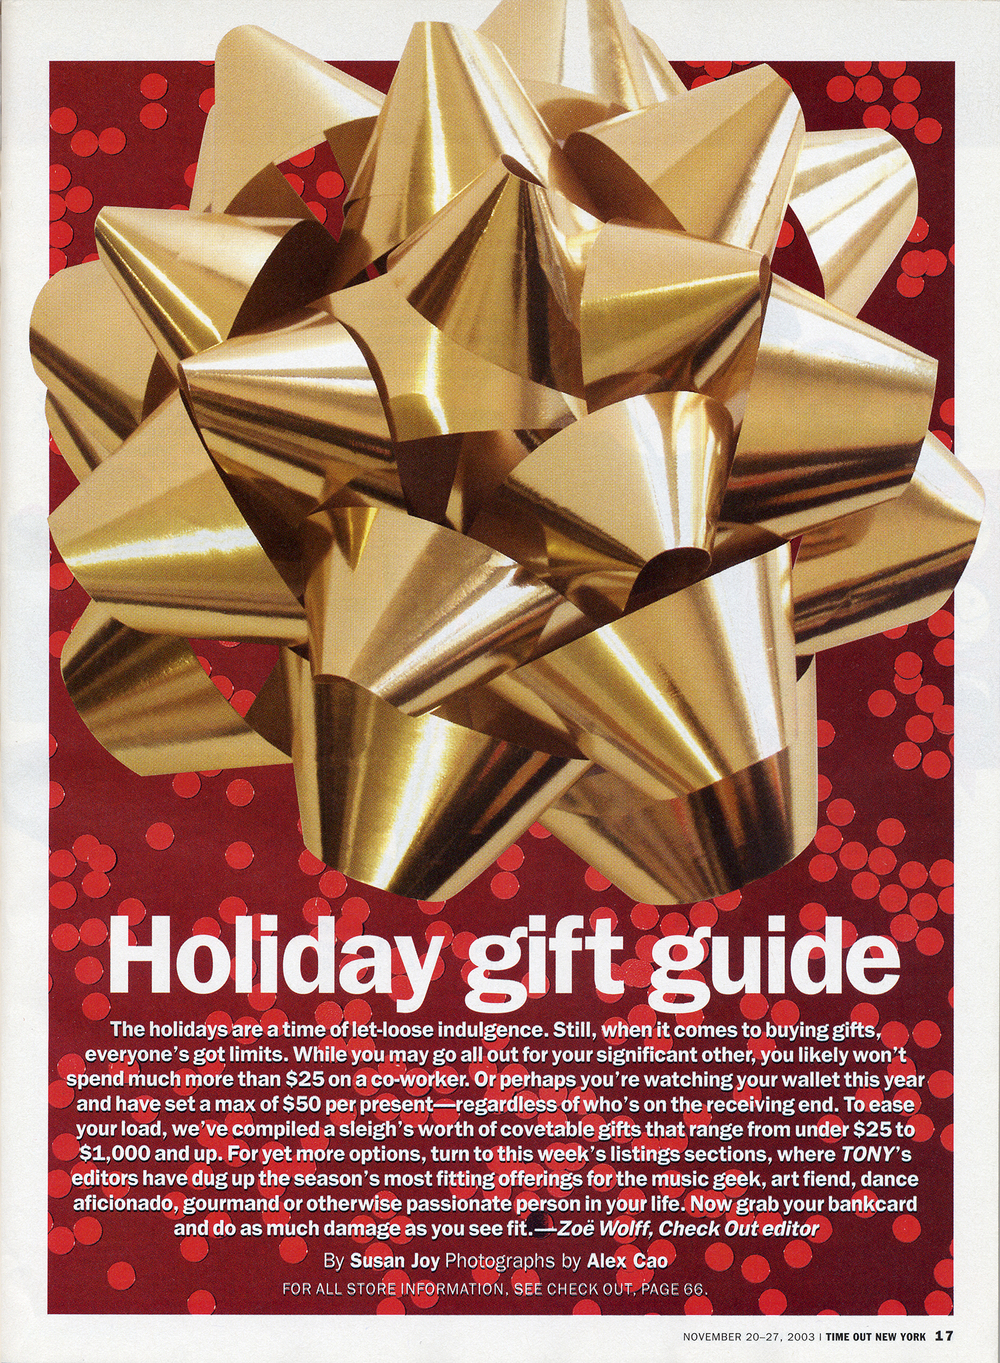 Time Out New York's Holiday Gift Guide featured the Hand Grenade Oil Lamps